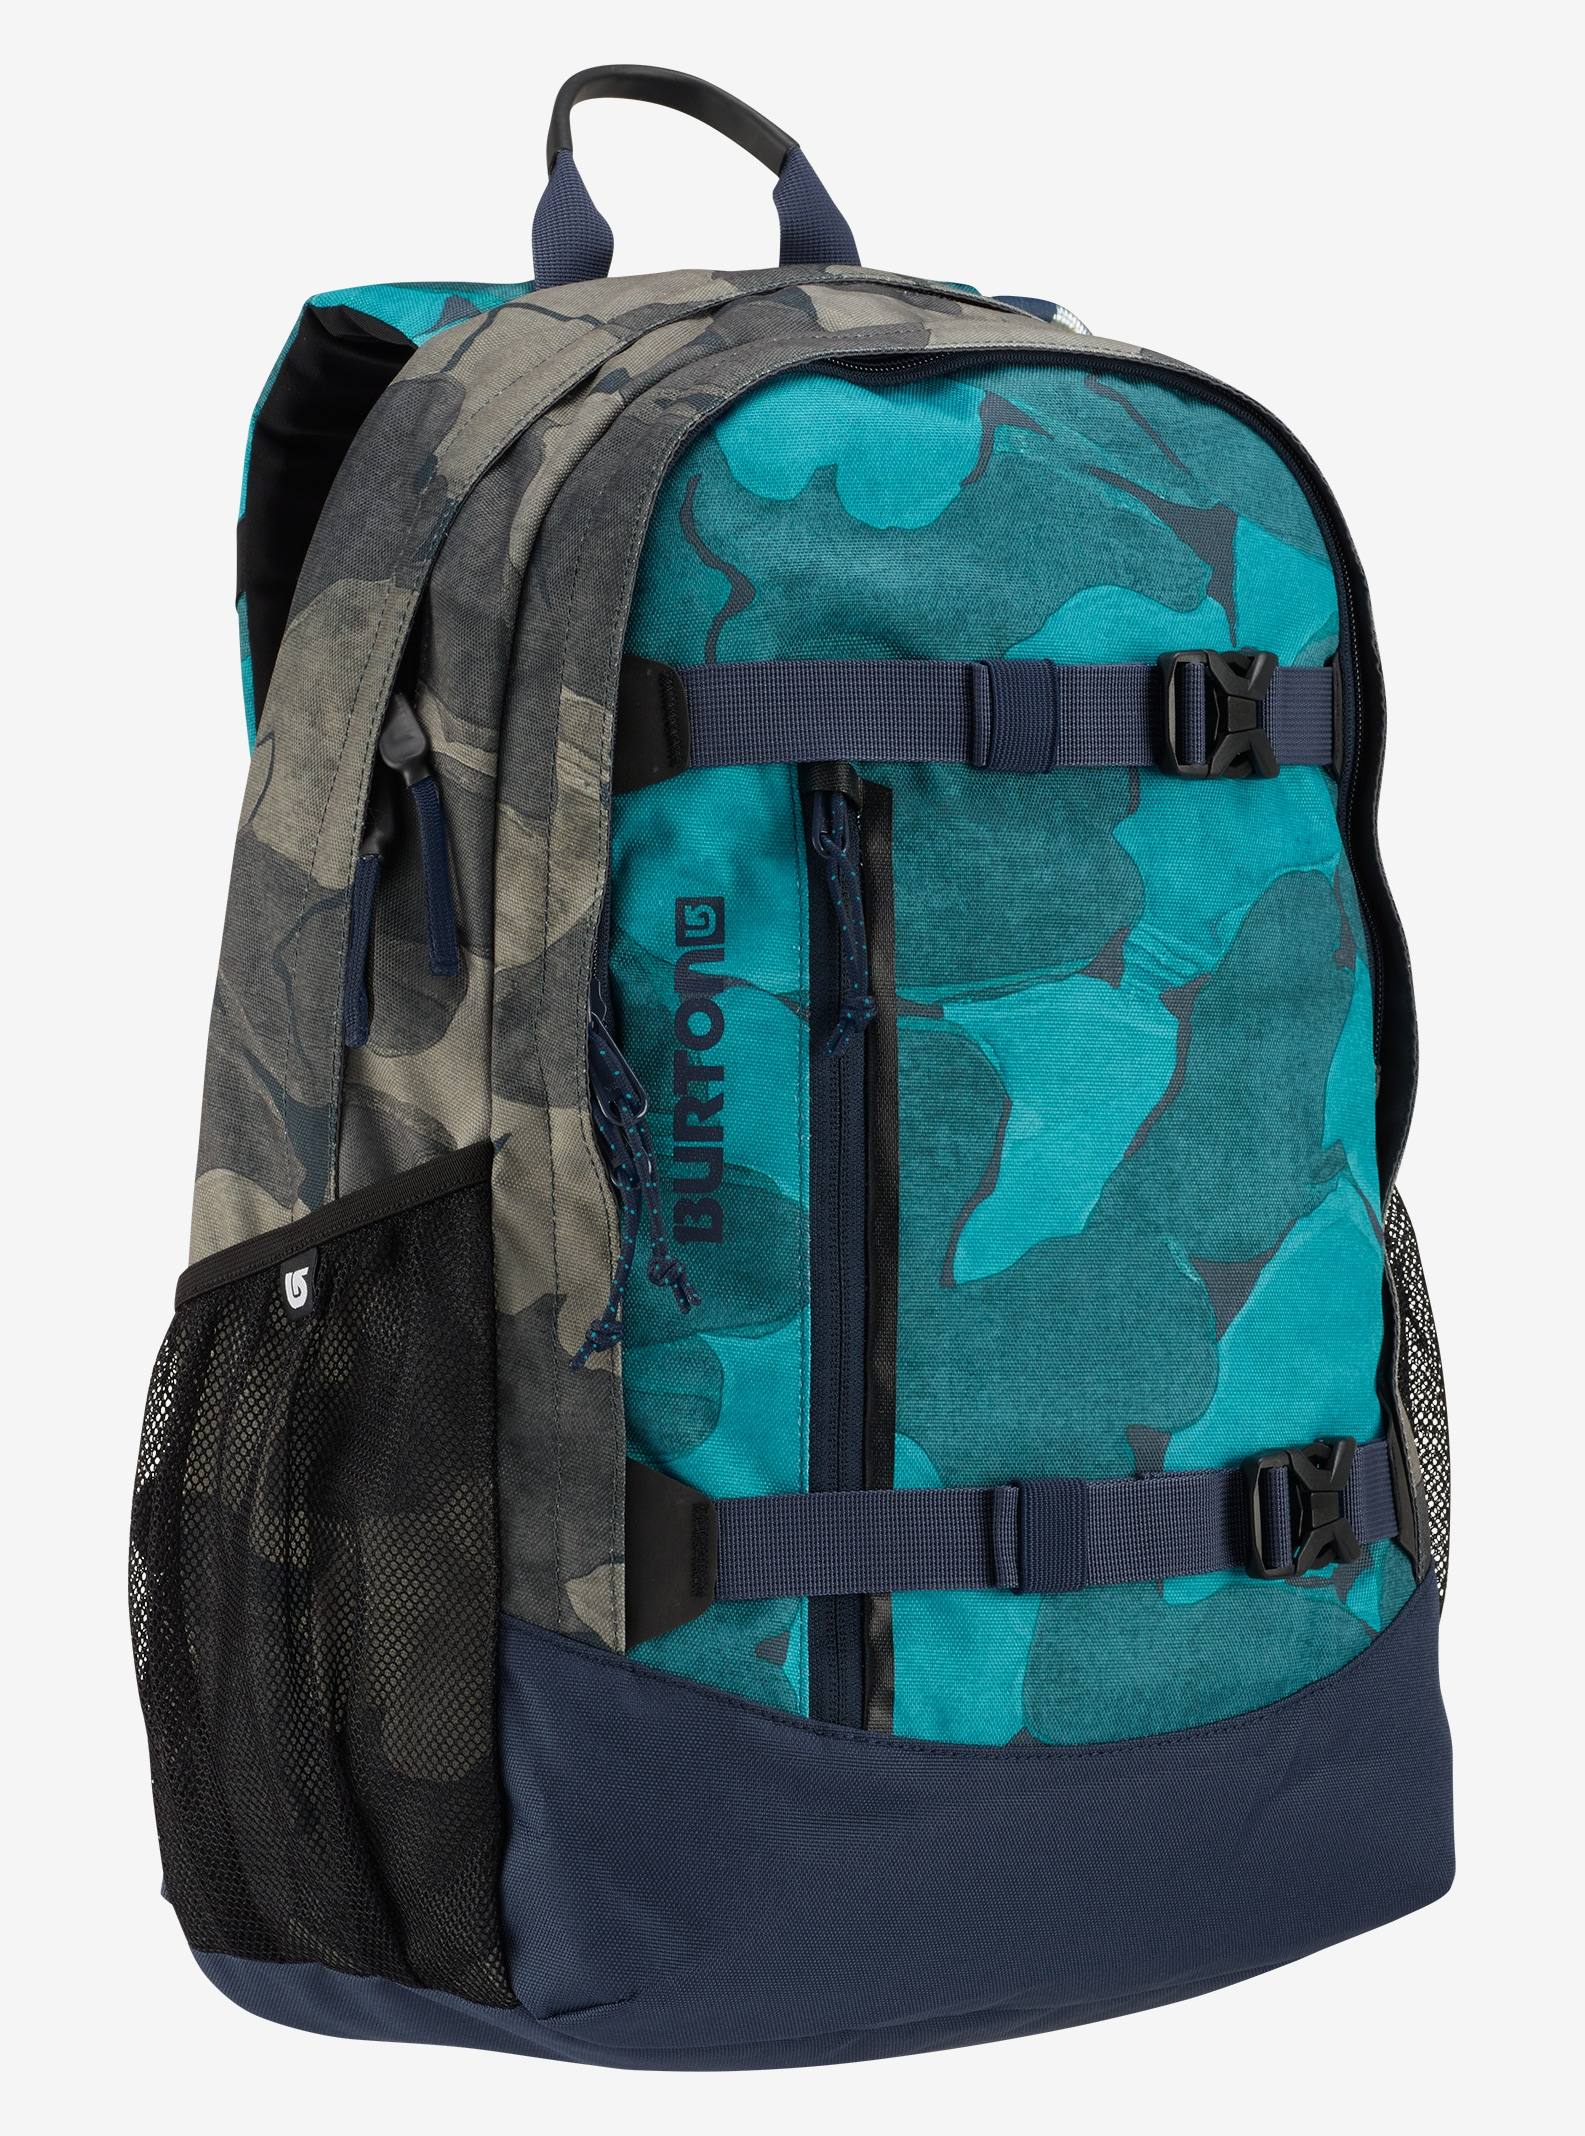 Burton Women's Day Hiker 23L Backpack shown in Pond Camo Print